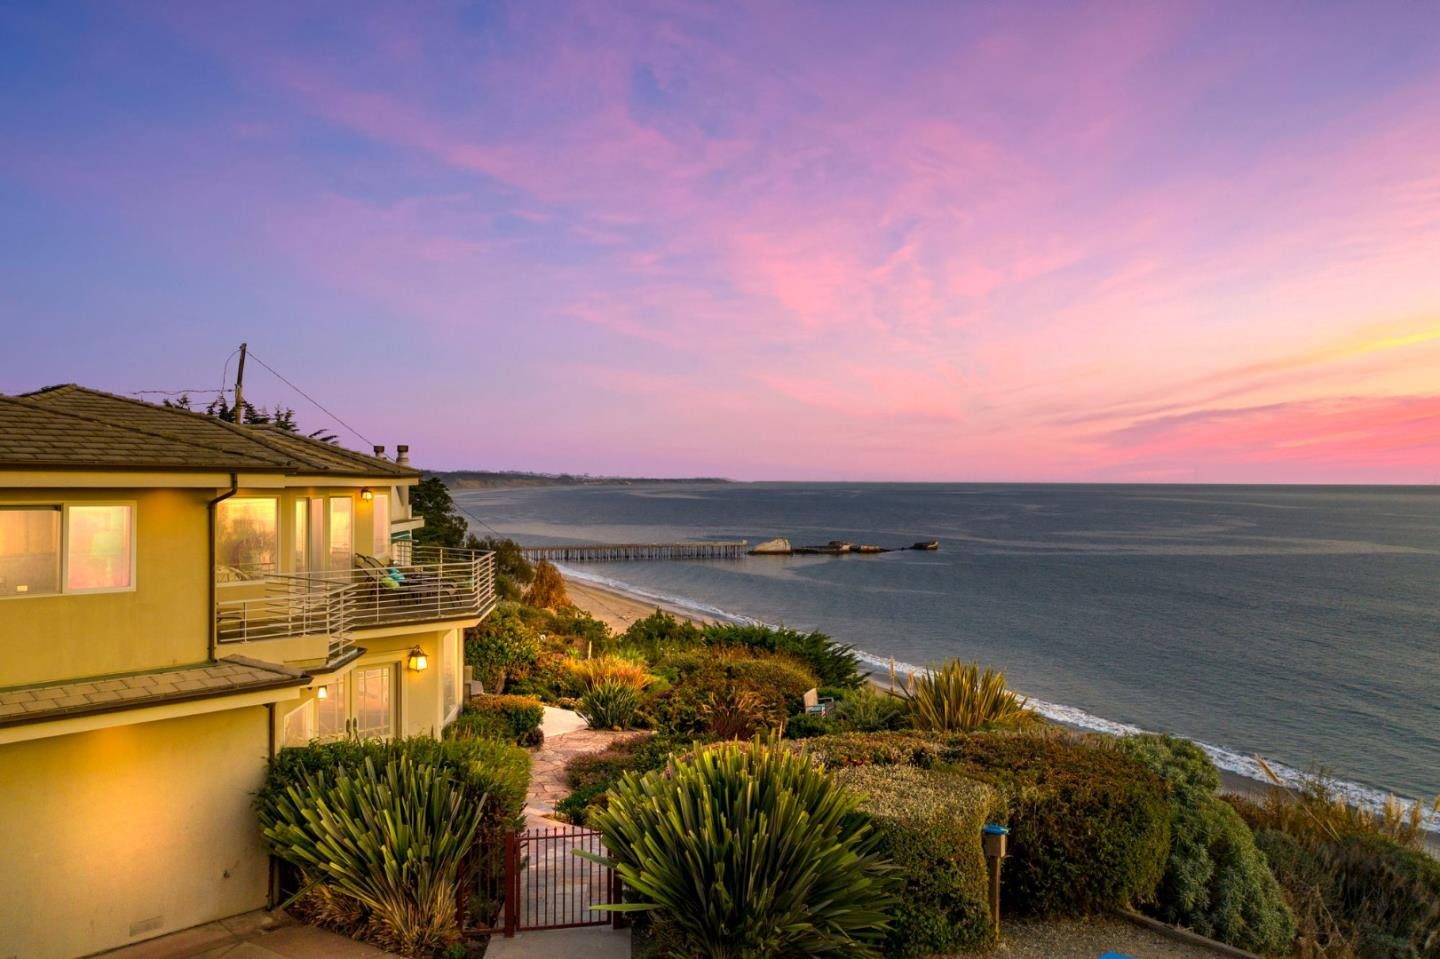 "Oceanfront garden paradise located behind a private gate set above the Seacliff Beach bluffs moments to beach access. Inside & out the home boasts BIG ocean & Monterey Bay views including views of the iconic Seacliff ""Cement Ship"" at the forefront. Multiple living areas open & adjoin to the gourmet kitchen with granite counters & cherry cabinets looking out big-picture windows to take in the incredible scenery. Upstairs bedrooms connect to a large wrap-around balcony offering panoramic coastal & ocean views. The master suite has a cozy sitting area with a fireplace, huge walk-in closet, & luxurious bath. A downstairs bonus room attaches to a full bath, a great place for guests, an office or hobby room. The grounds offer lush gardens & multiple areas including a deck for dining, fire pit with sitting area, custom stone walkways & a lower patio at the point of the bluff. One car garage with ample parking. Unwind & entertain, take in the evening sunsets & hear the crashing of the waves."